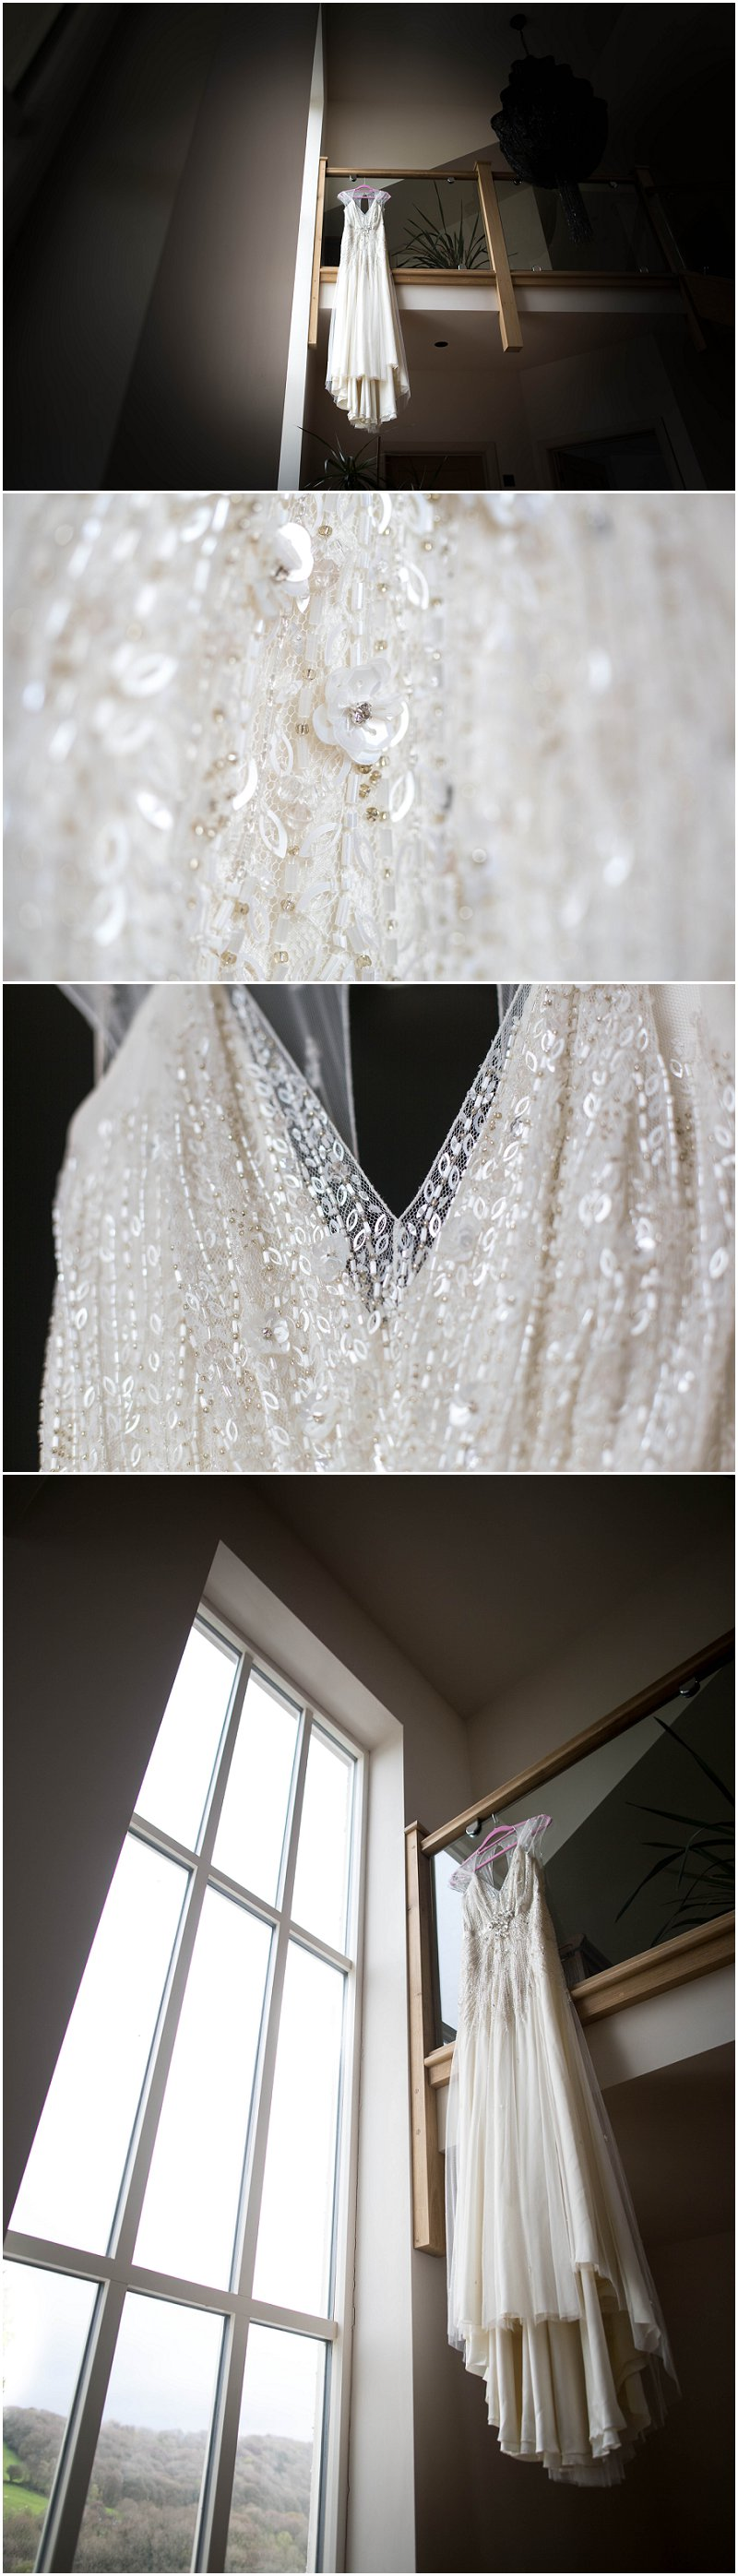 Lace and Beaded Wedding Dress Detail Wedding Photos